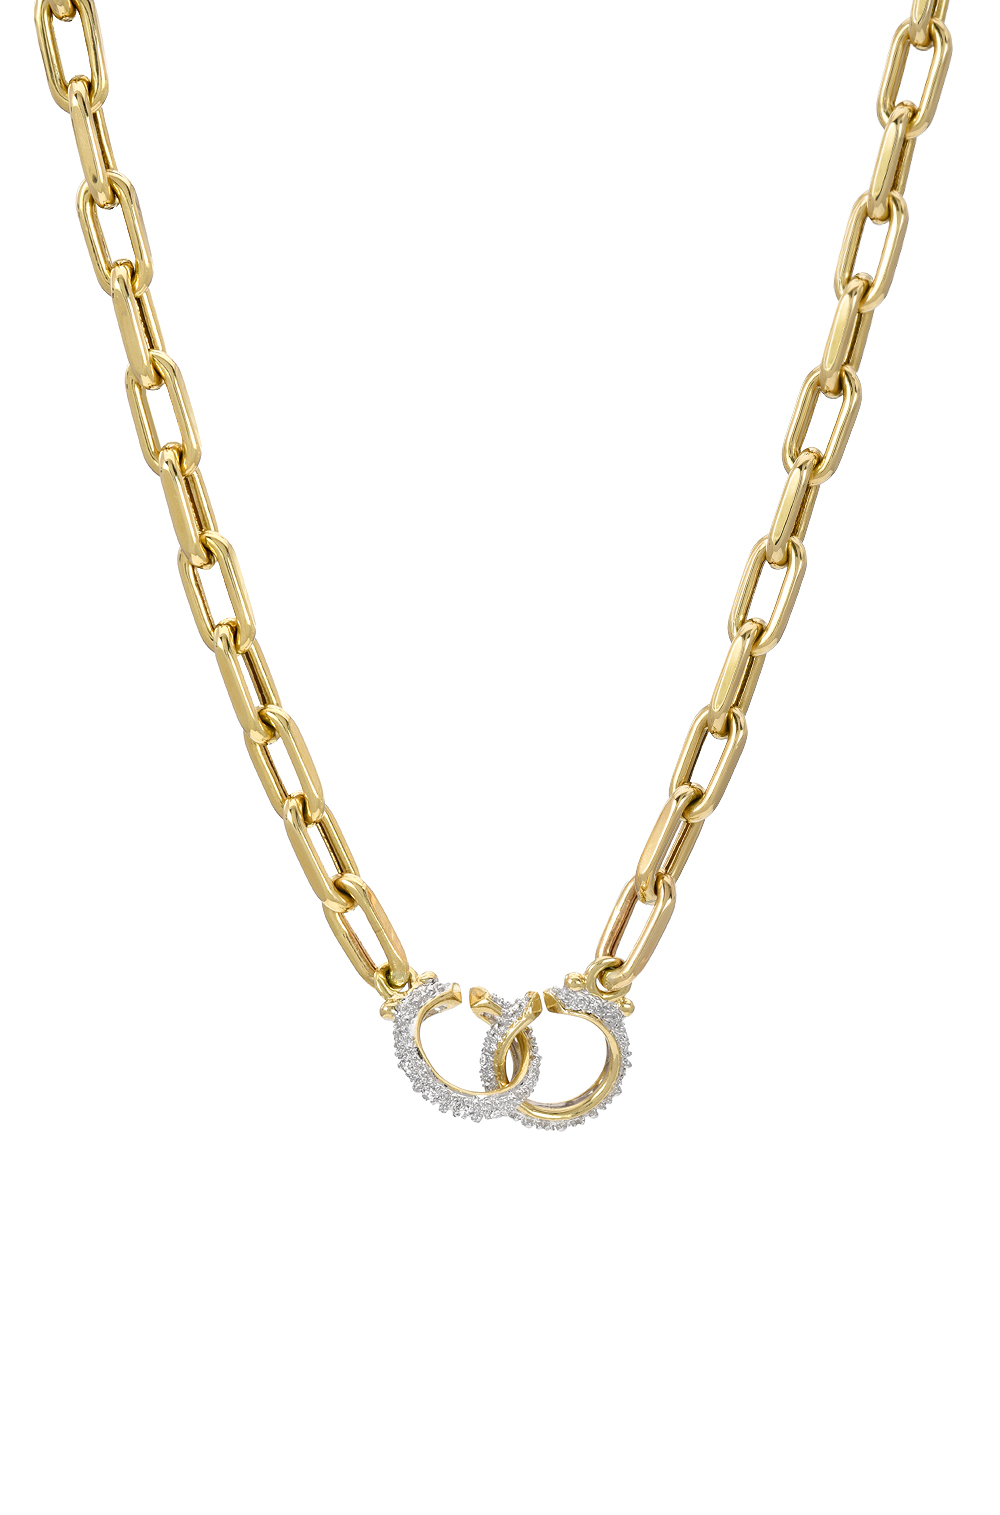 Yellow, White, Rose Gold 14k Gold Handcuffs Necklace